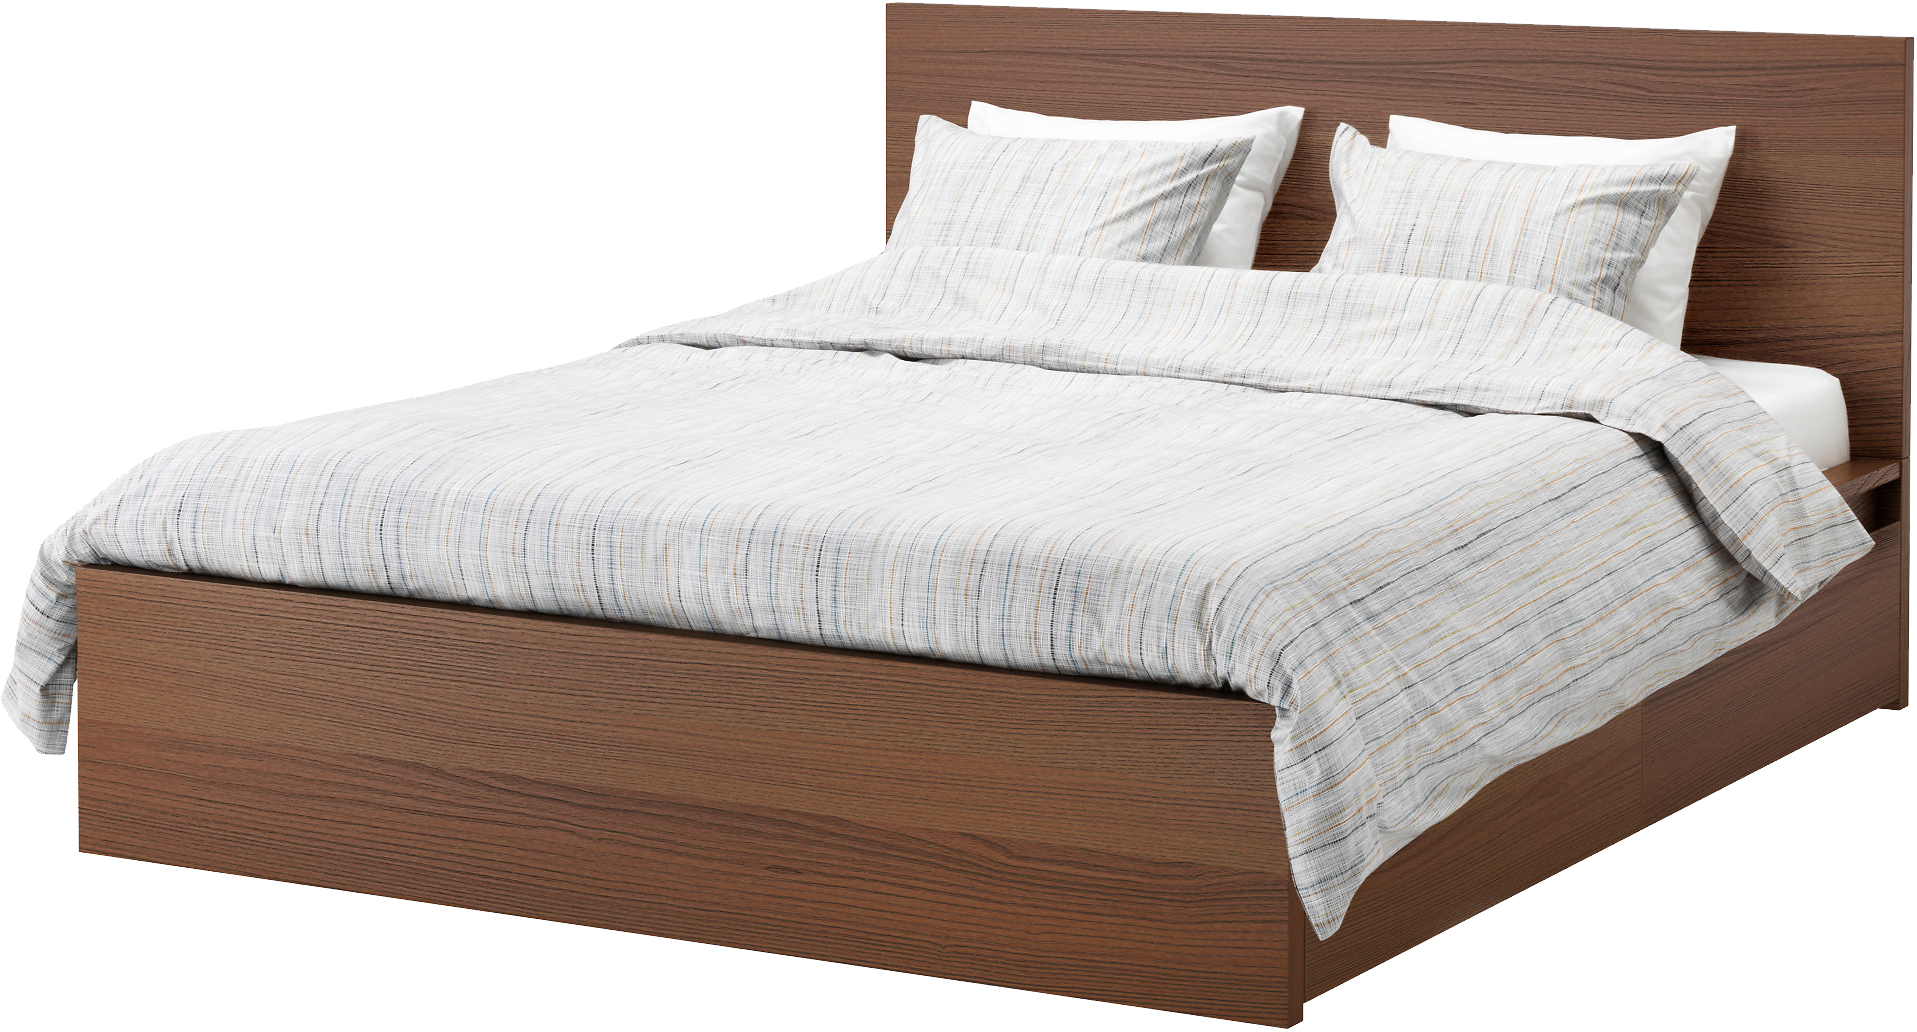 bed png image purepng free transparent cc0 png image library